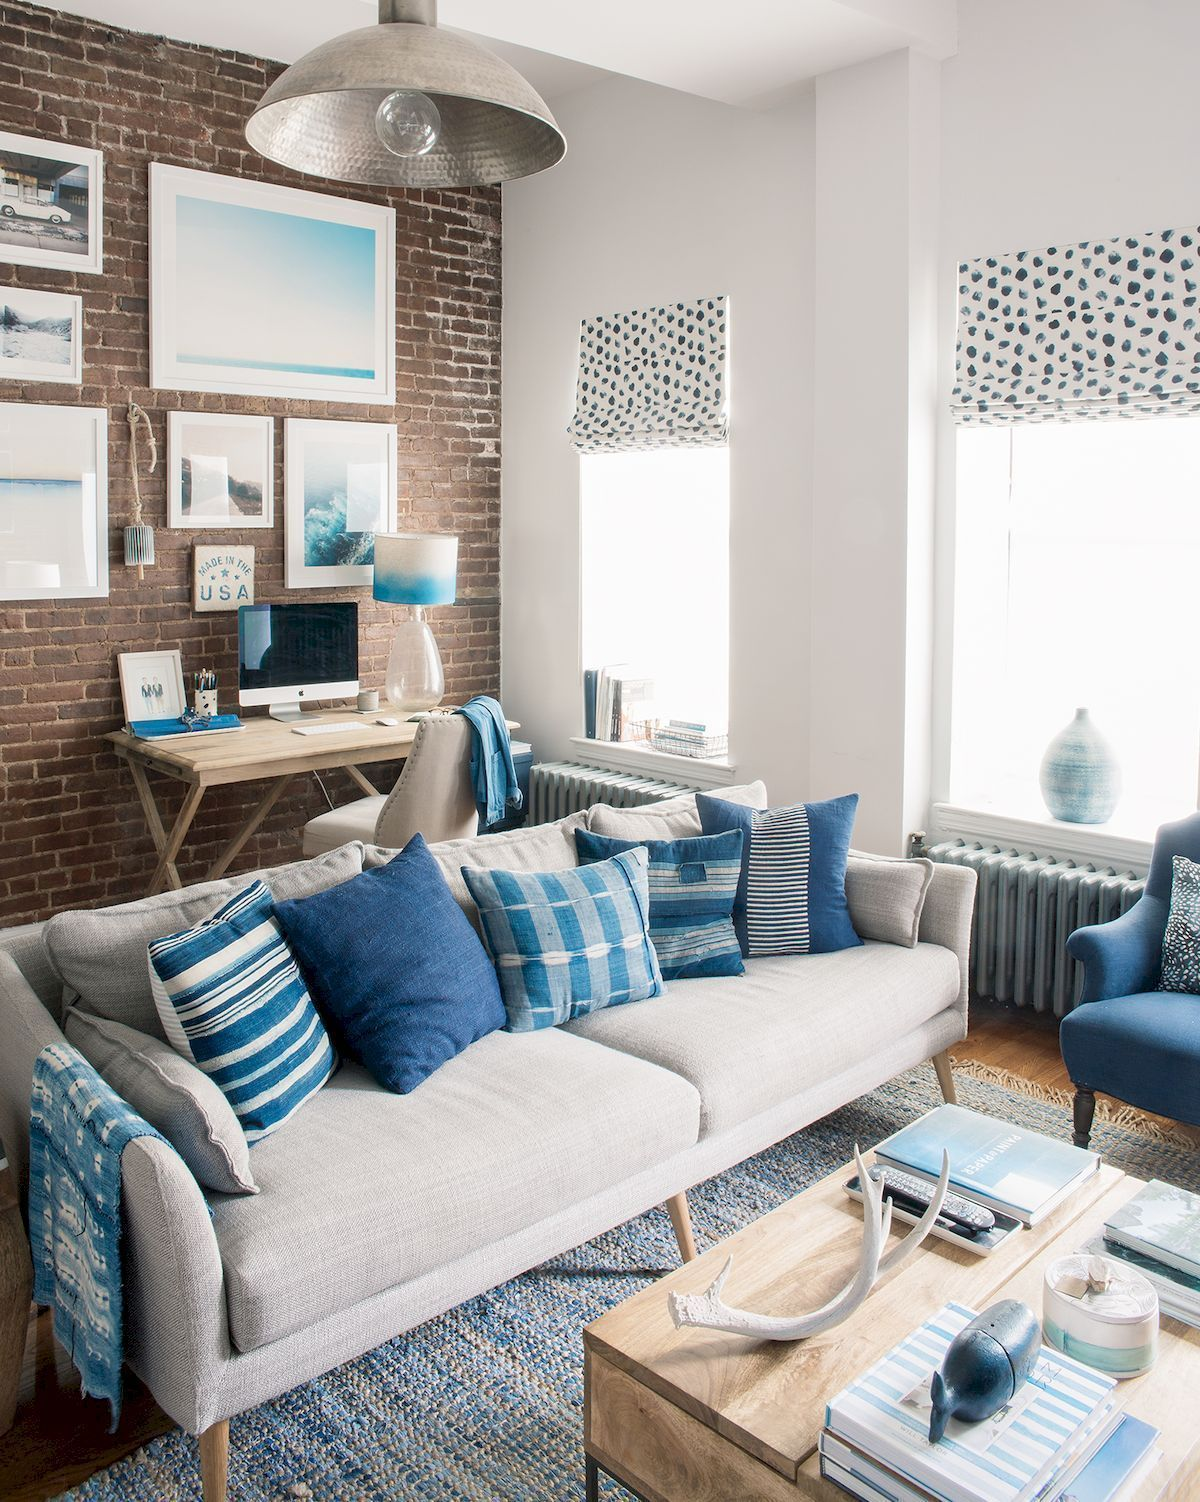 50 beautiful summer apartment decor ideas and makeover 30